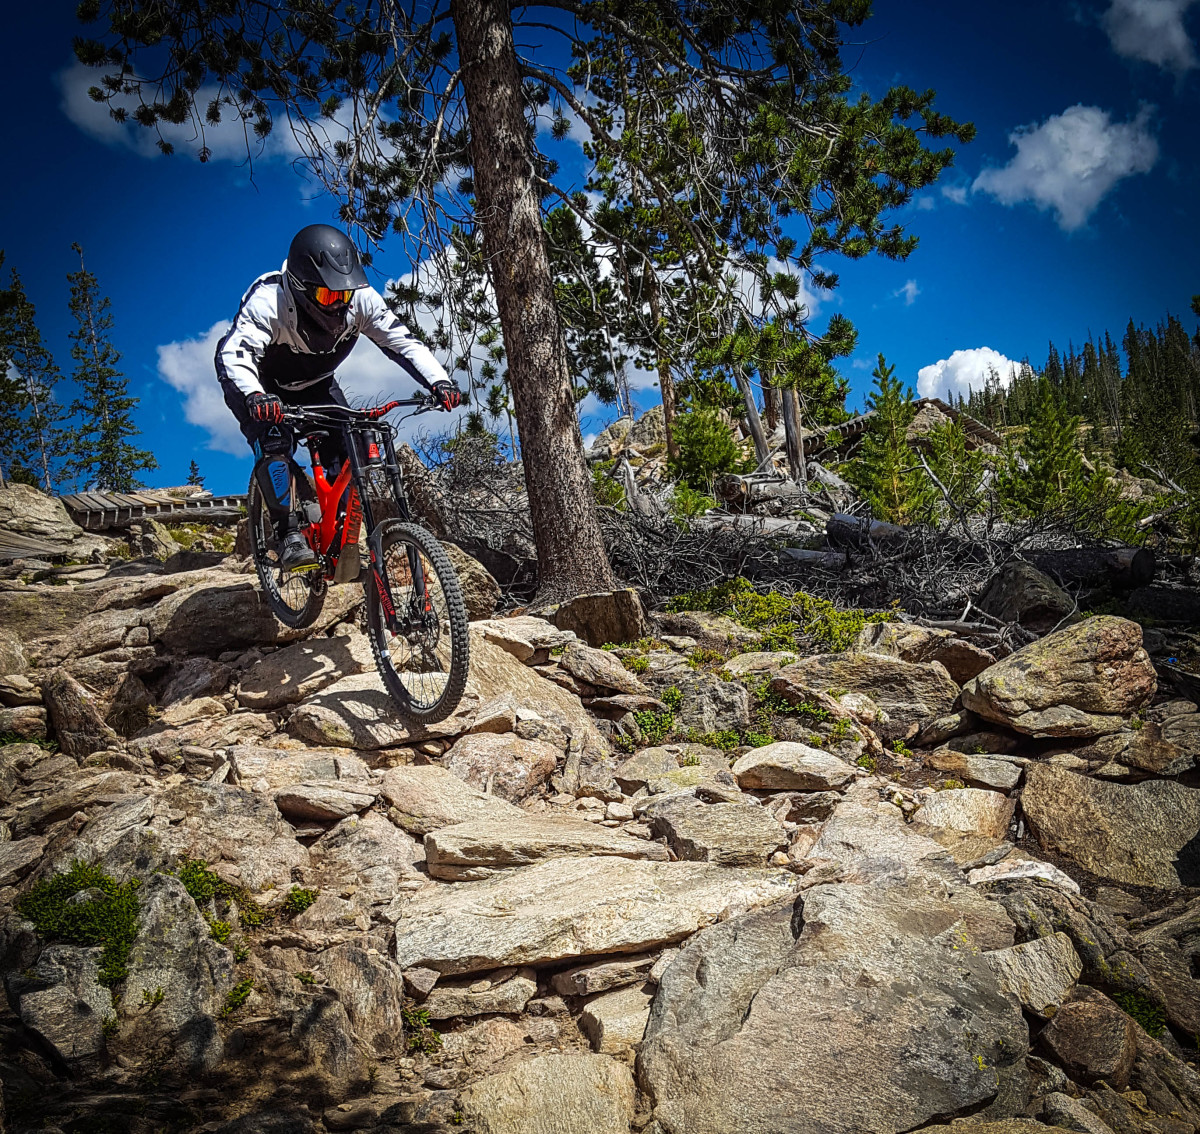 Mountain Bike Skills learn how to ride steep descents